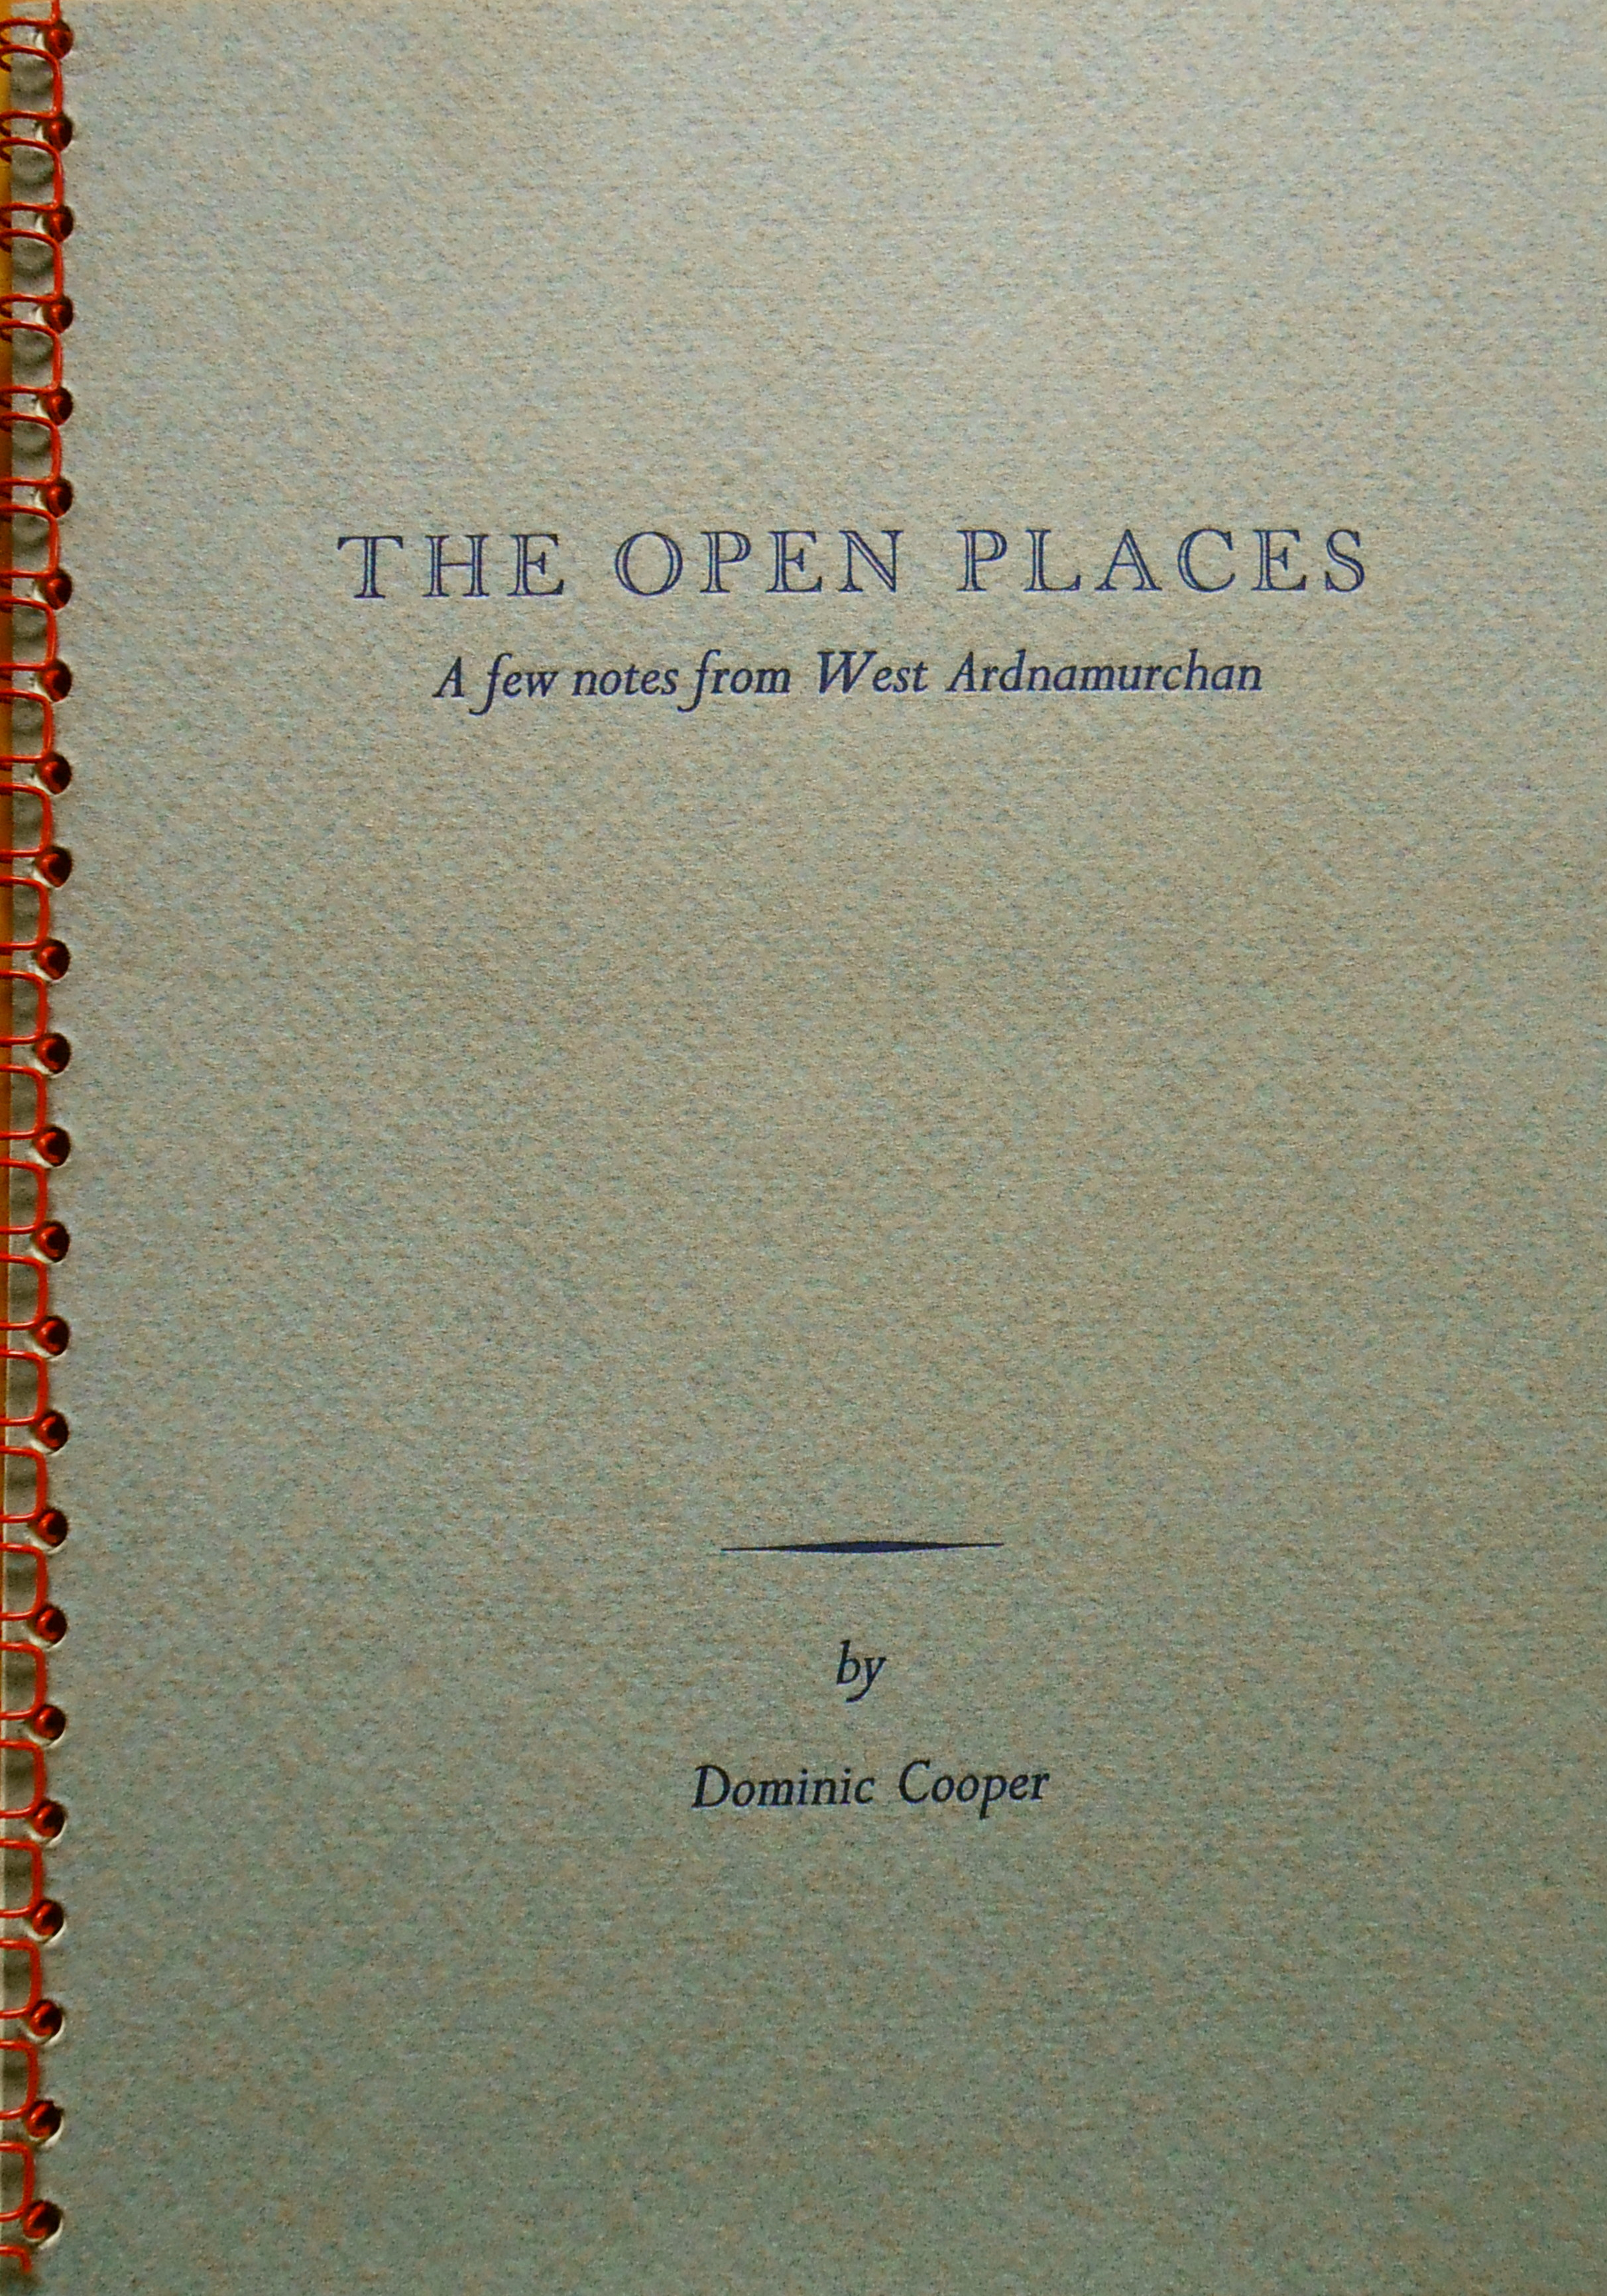 The Open Places